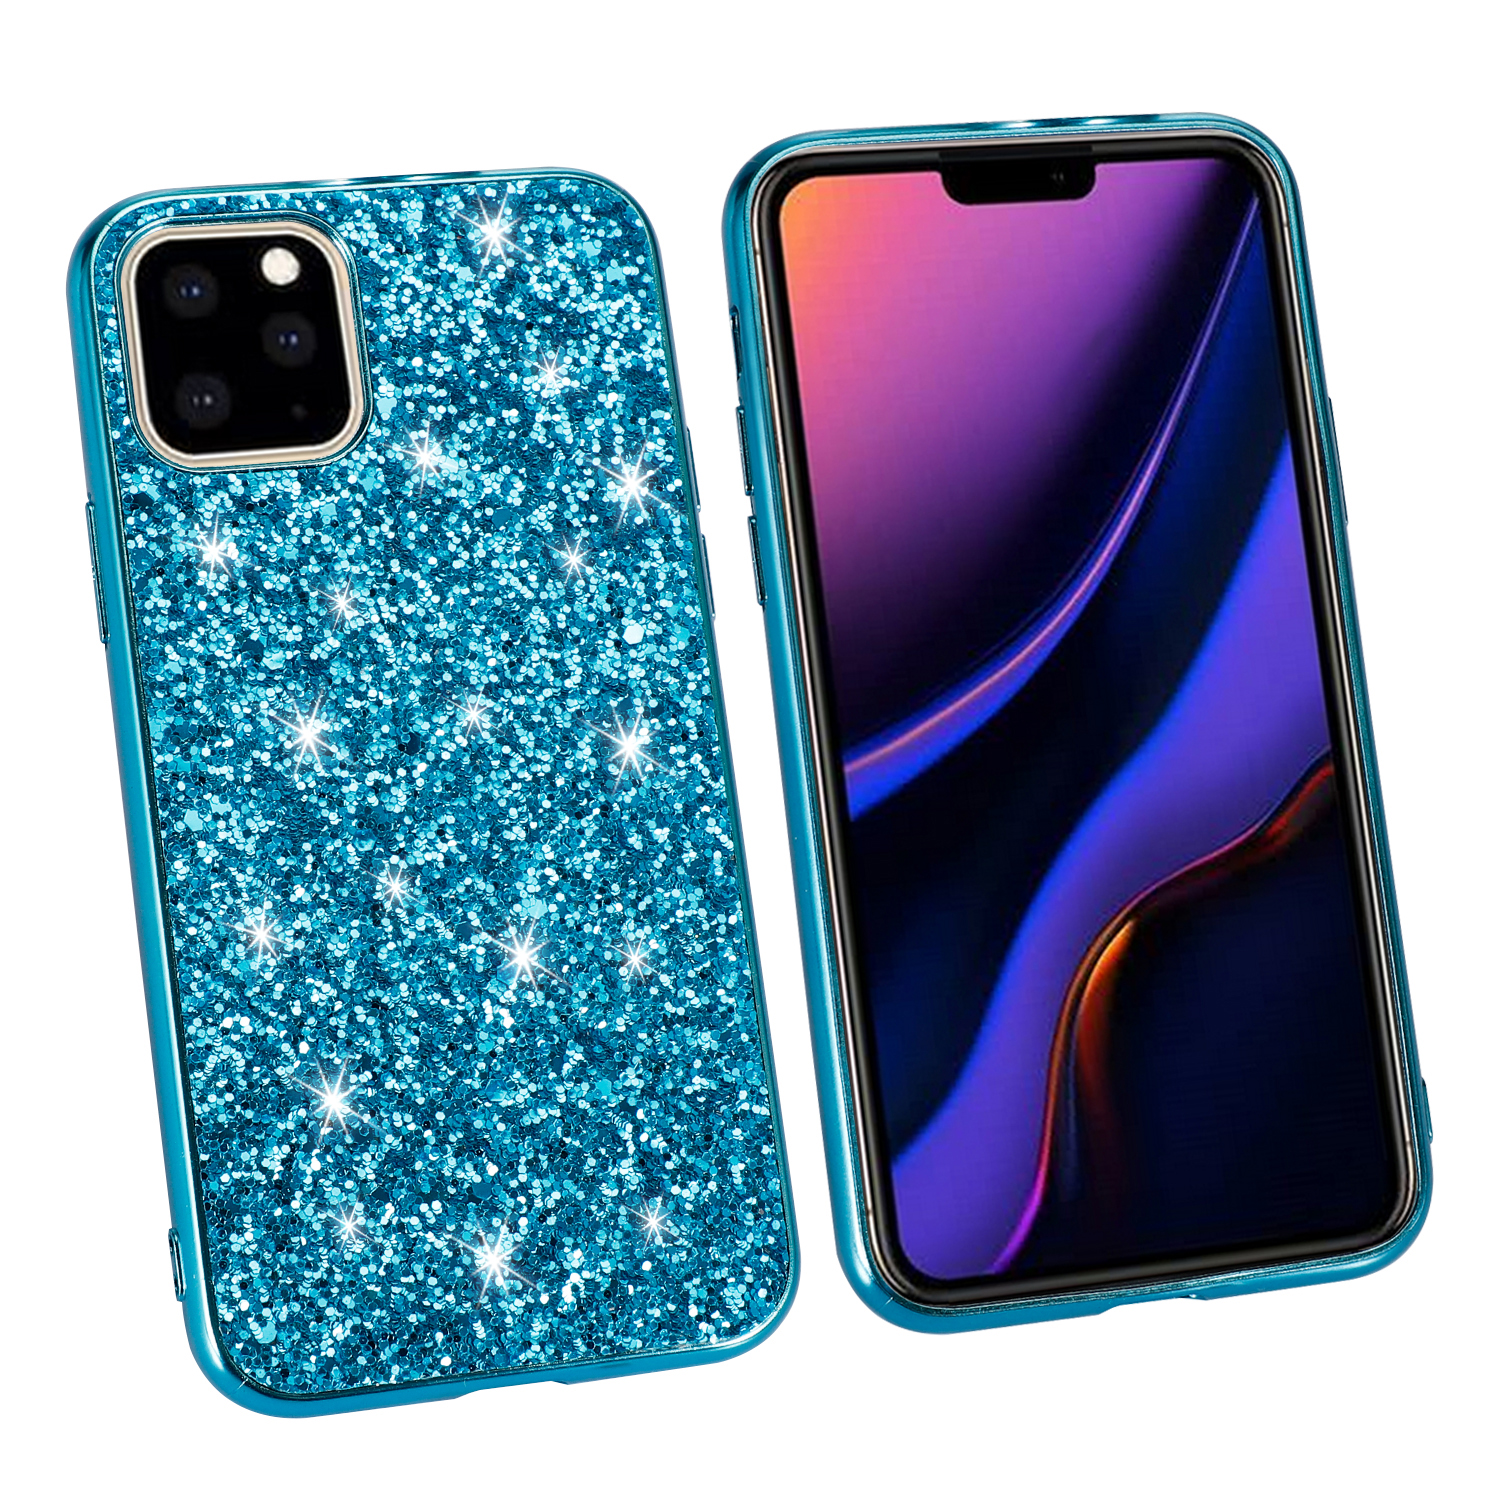 Shiny Glitter Girls Case for iPhone 11/11 Pro/11 Pro Max 21